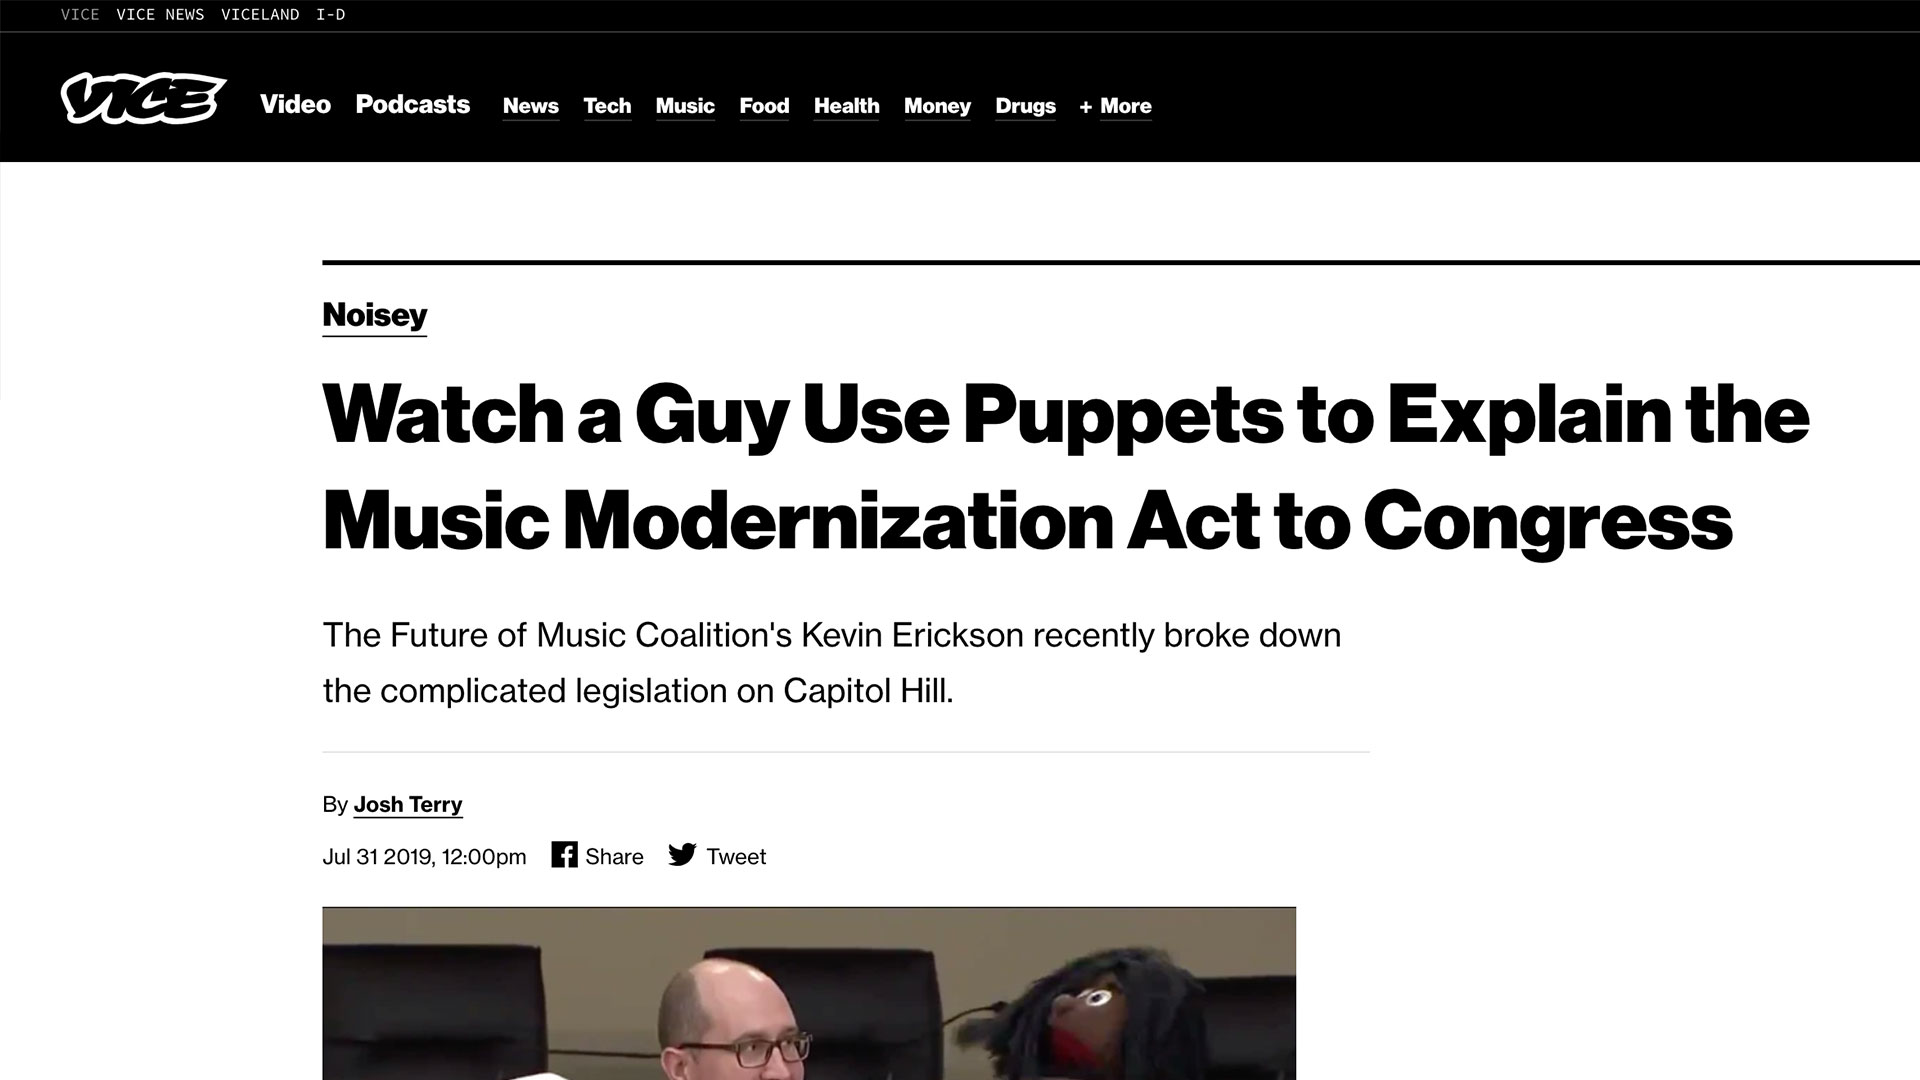 Fairness Rocks News Watch a Guy Use Puppets to Explain the Music Modernization Act to Congress